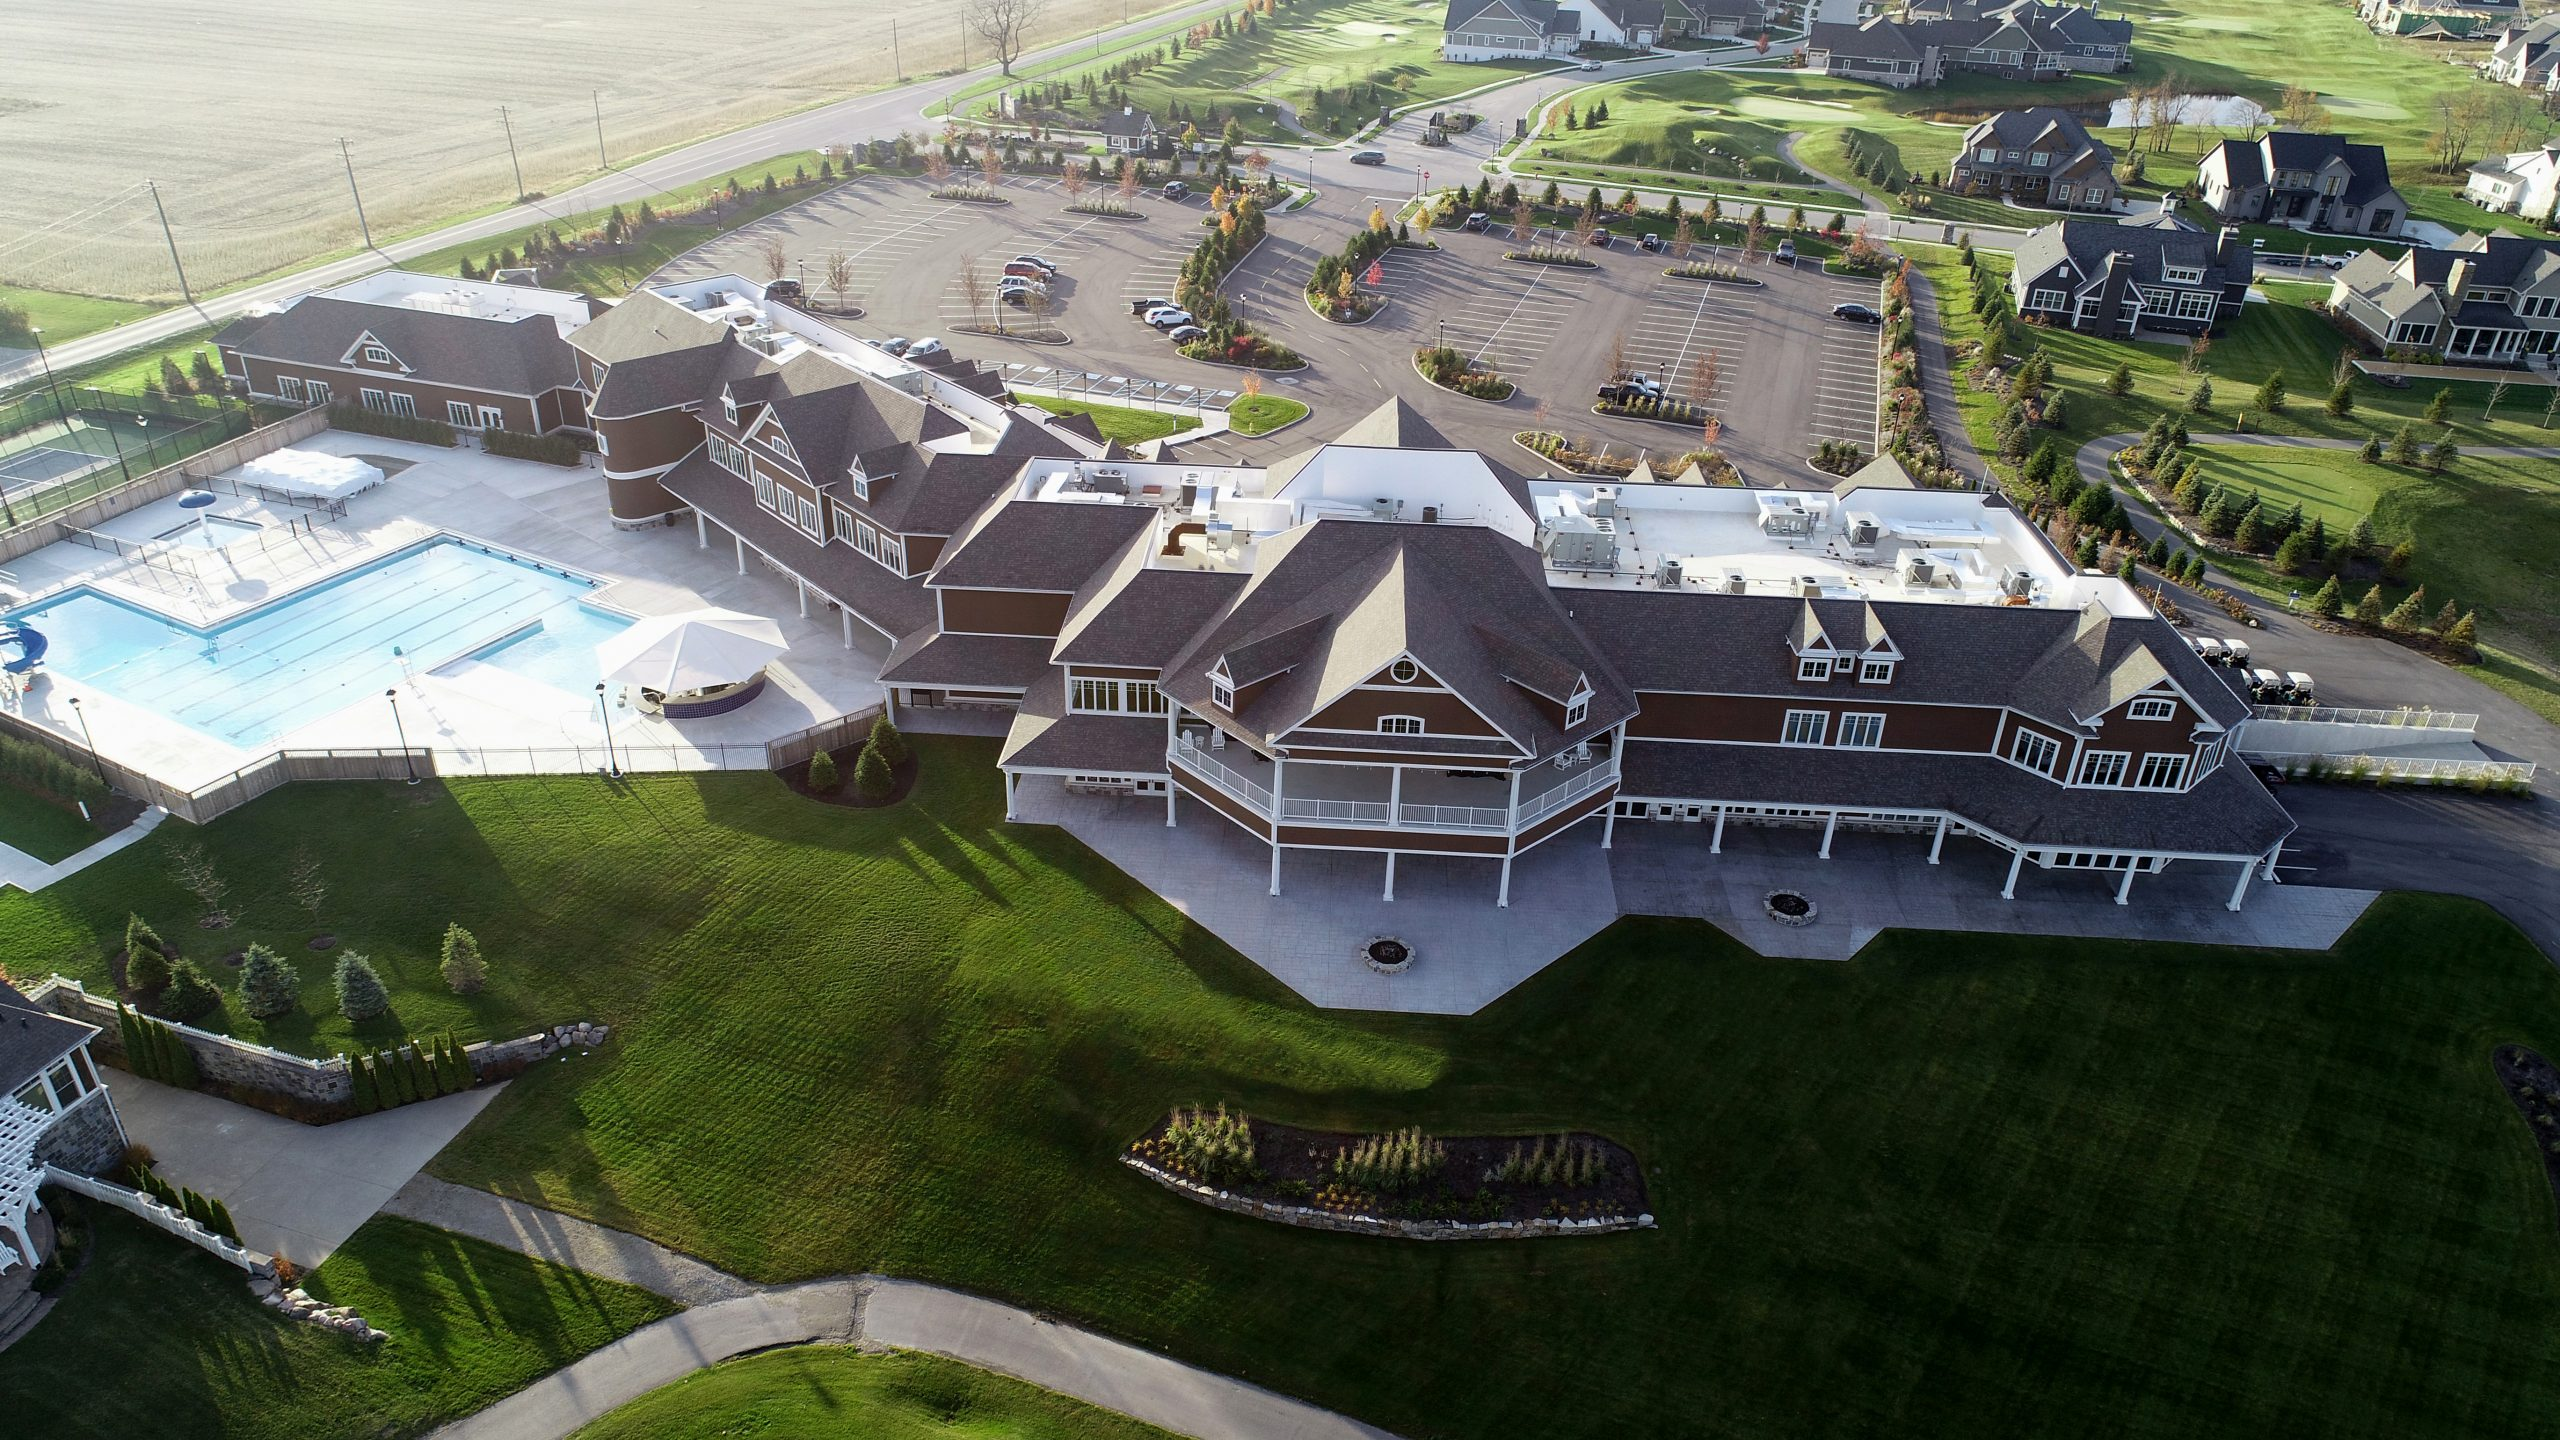 Chatham Hills clubhouse commercial roofing project by ce reeve roofing in indiana